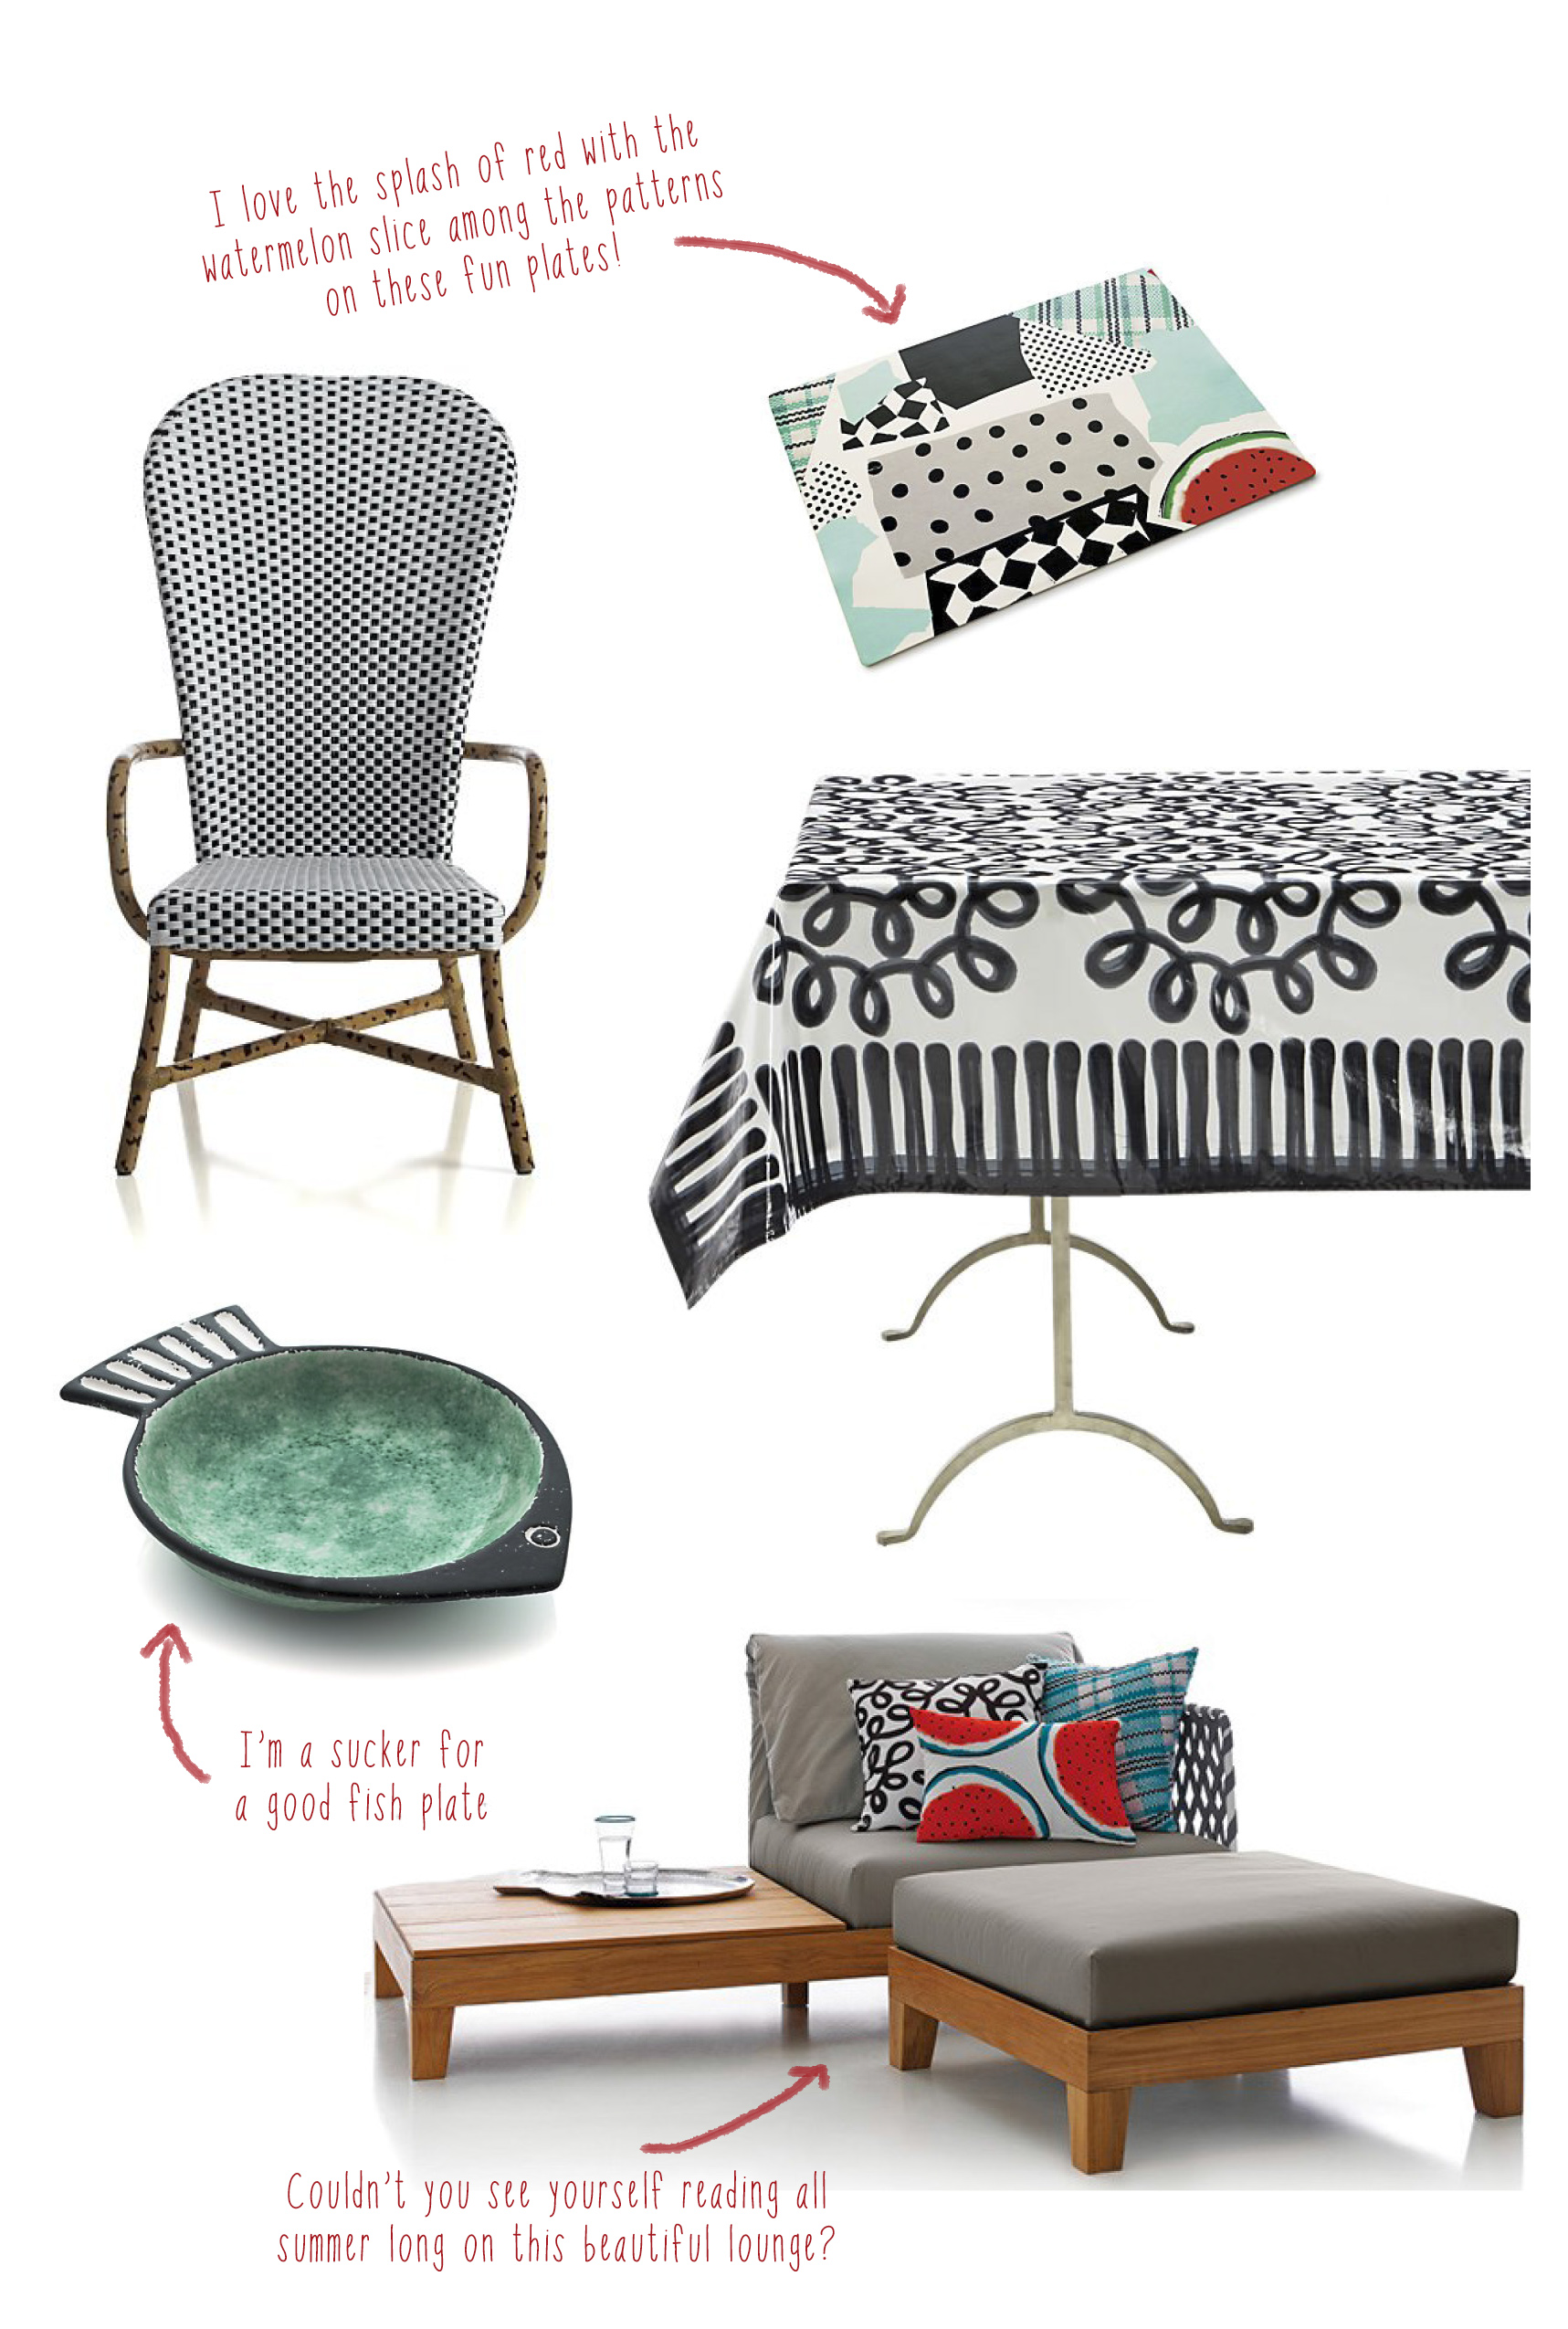 Plates  |  Chair  |  Table Cloth  |  Fish Bowl  |  Lounge